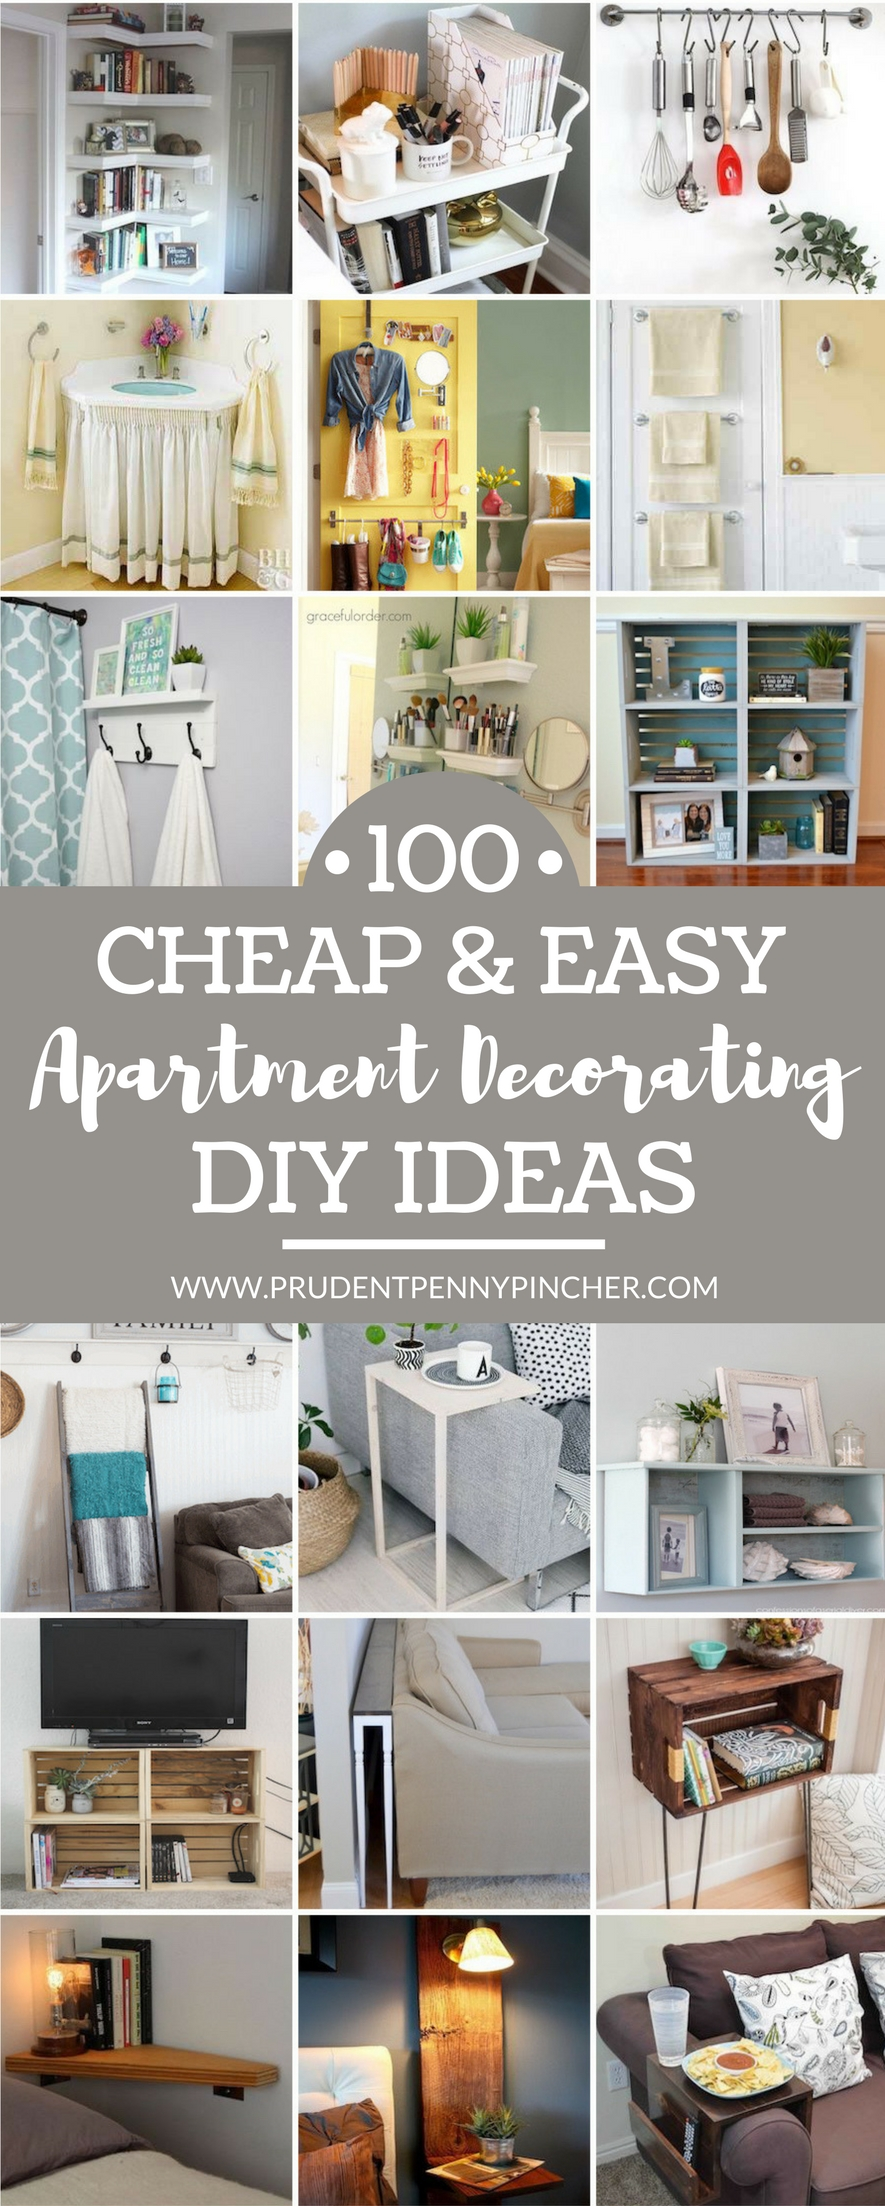 10 Most Popular Diy Decorating Ideas For Apartments 100 cheap and easy diy apartment decorating ideas prudent penny 2020